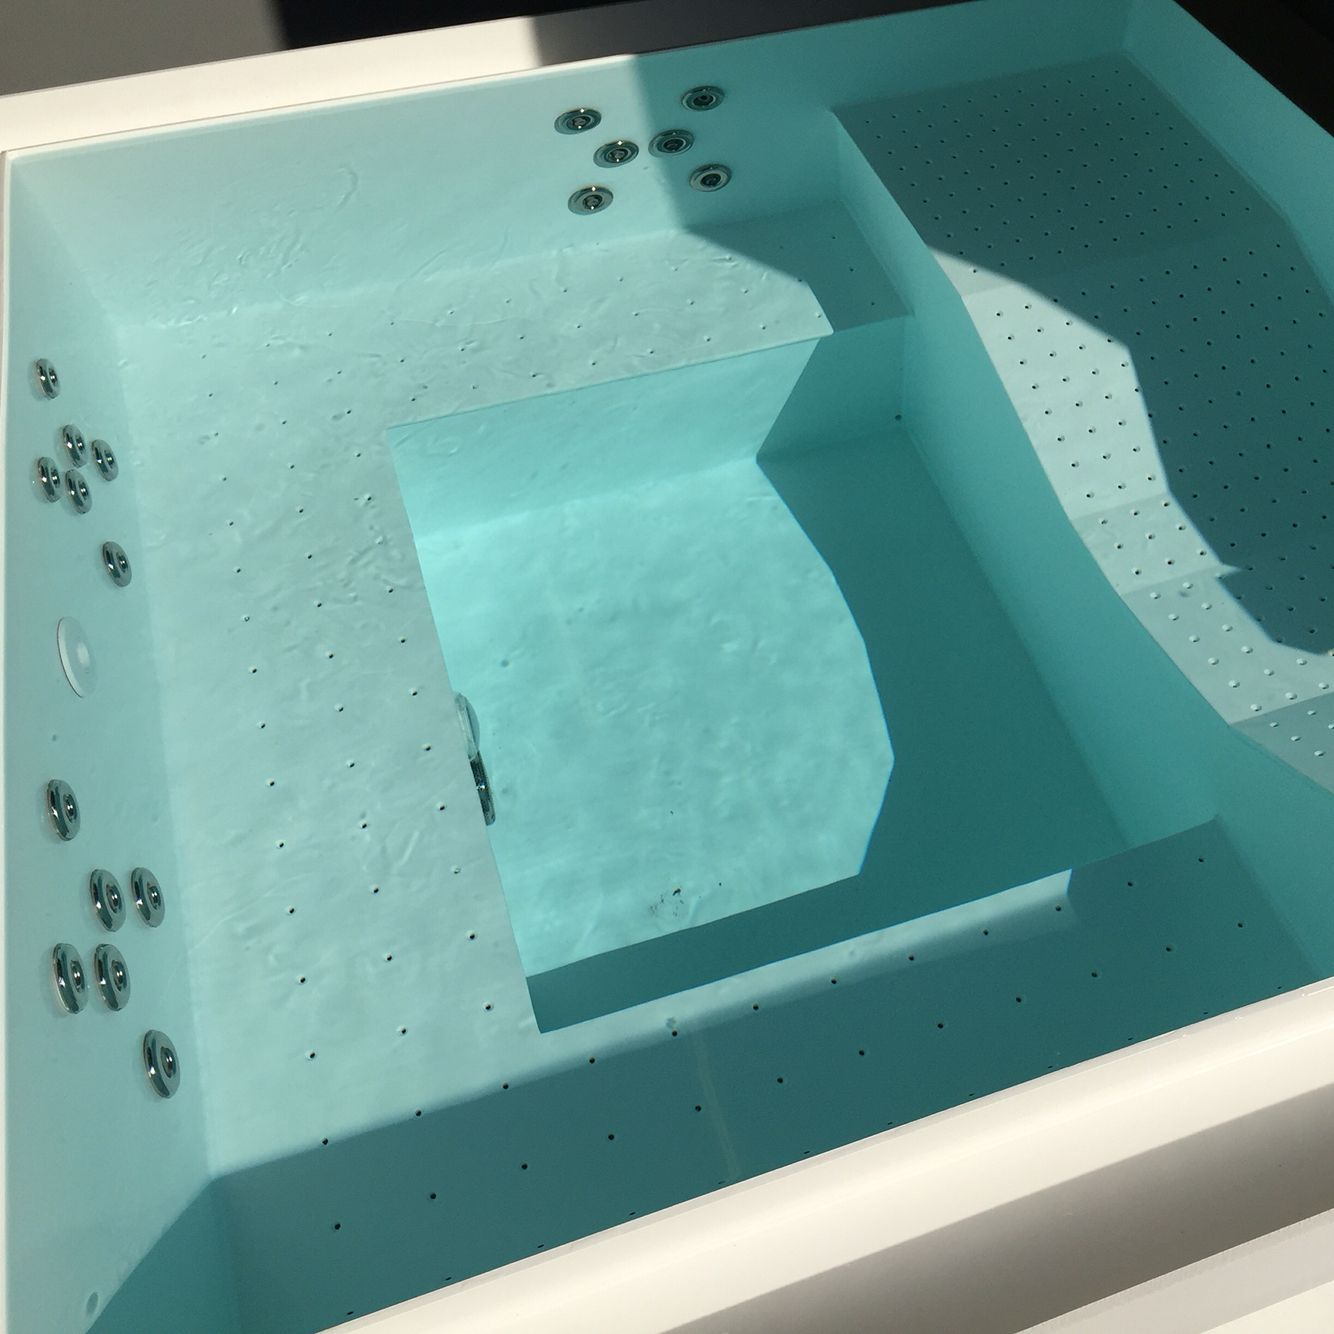 Custom-made jacuzzi. Almost all options are possible. Material from ...